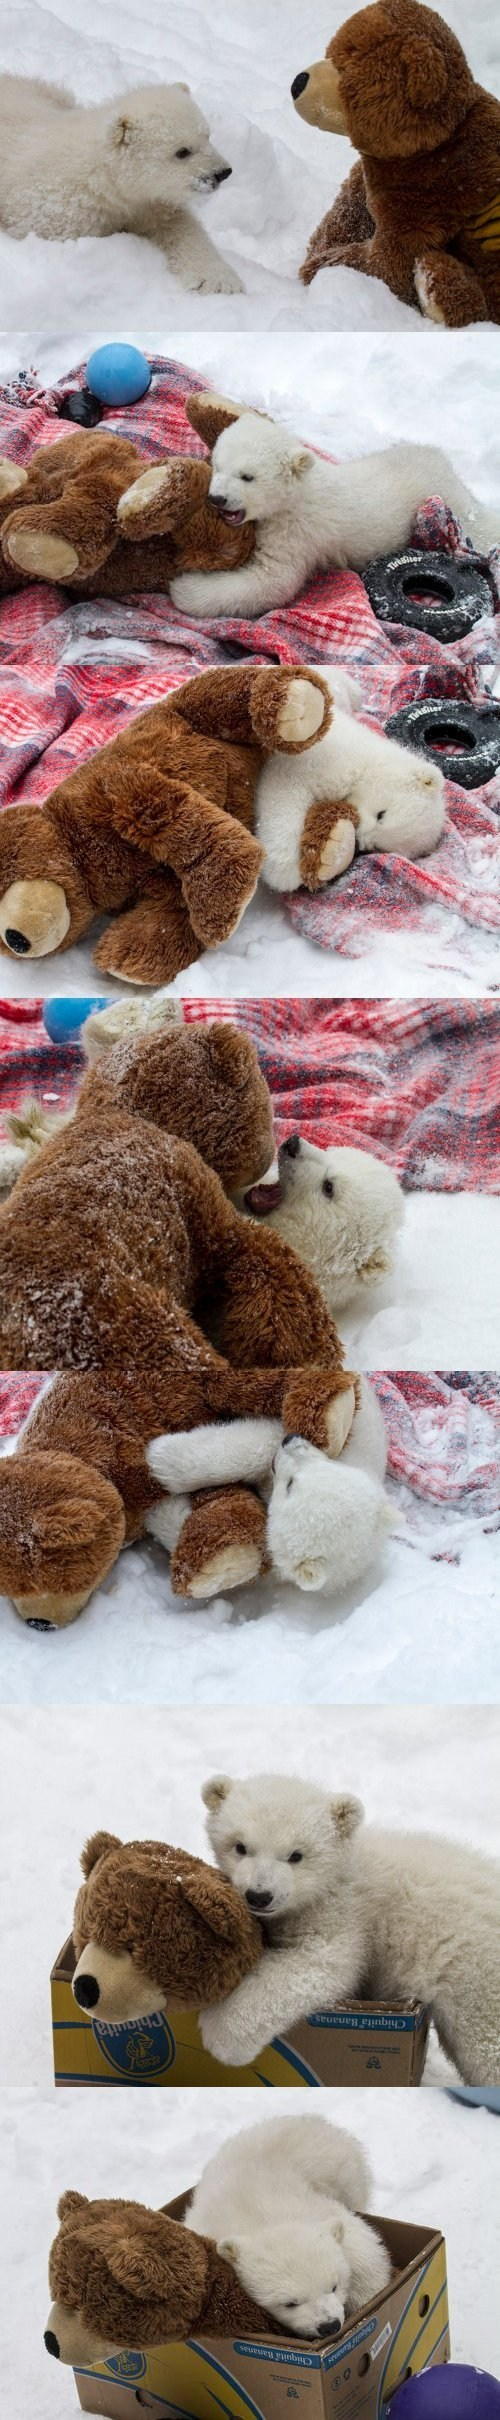 teddy bear,polar bear,attack